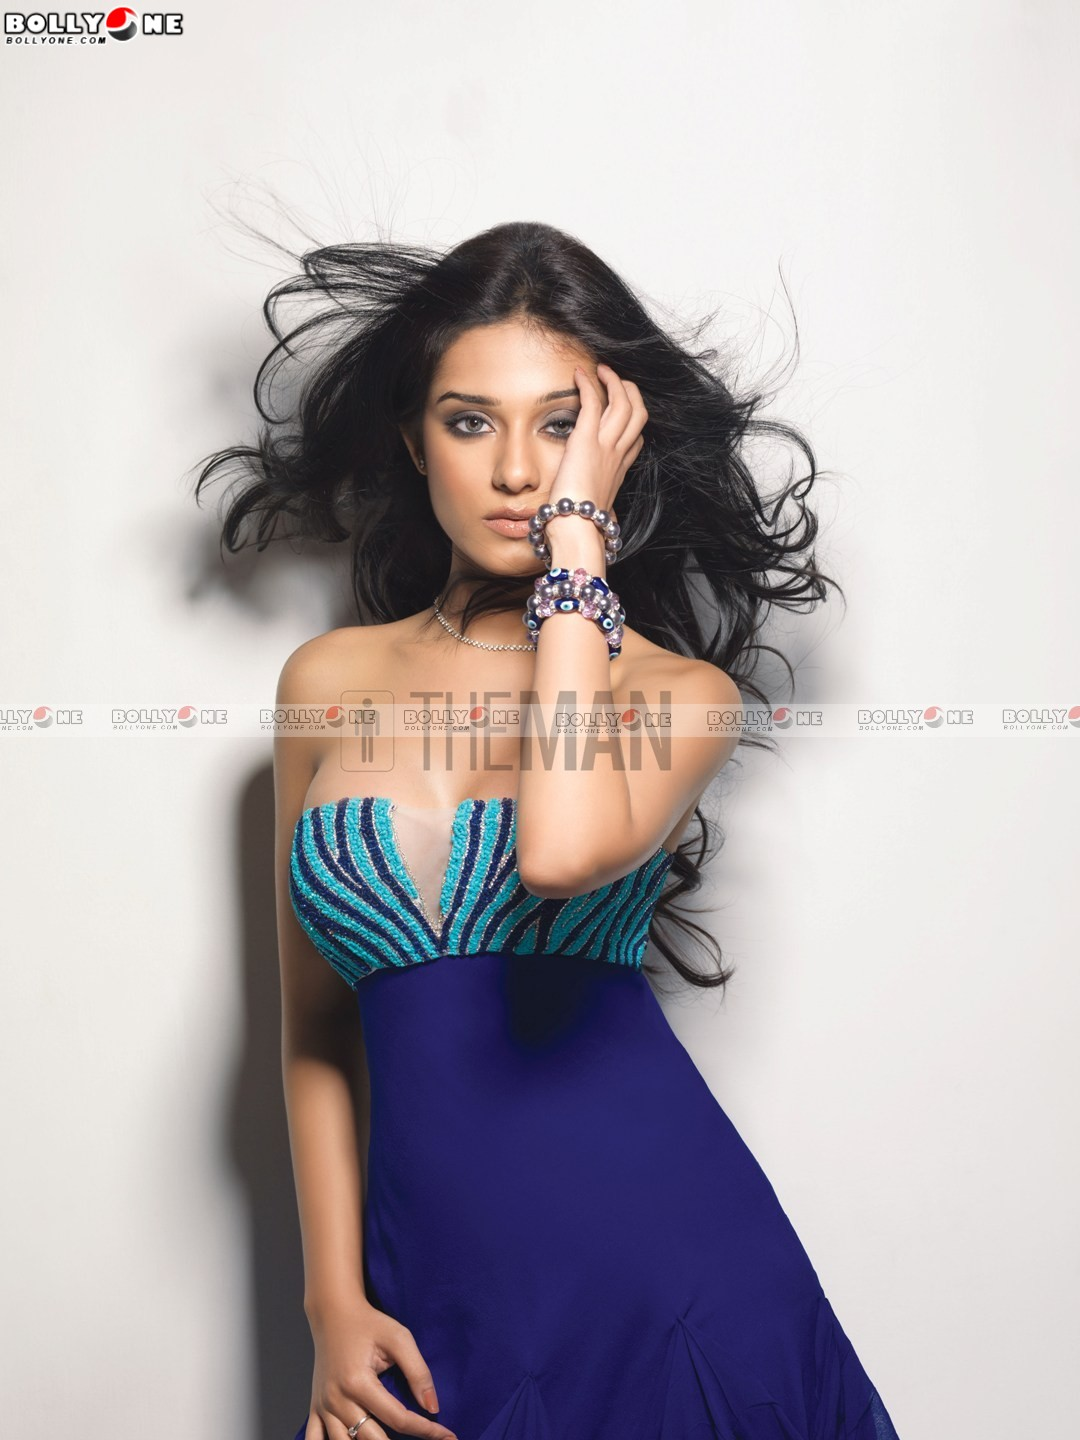 [Amrita+Rao+The+Man+Mag+photo+1]